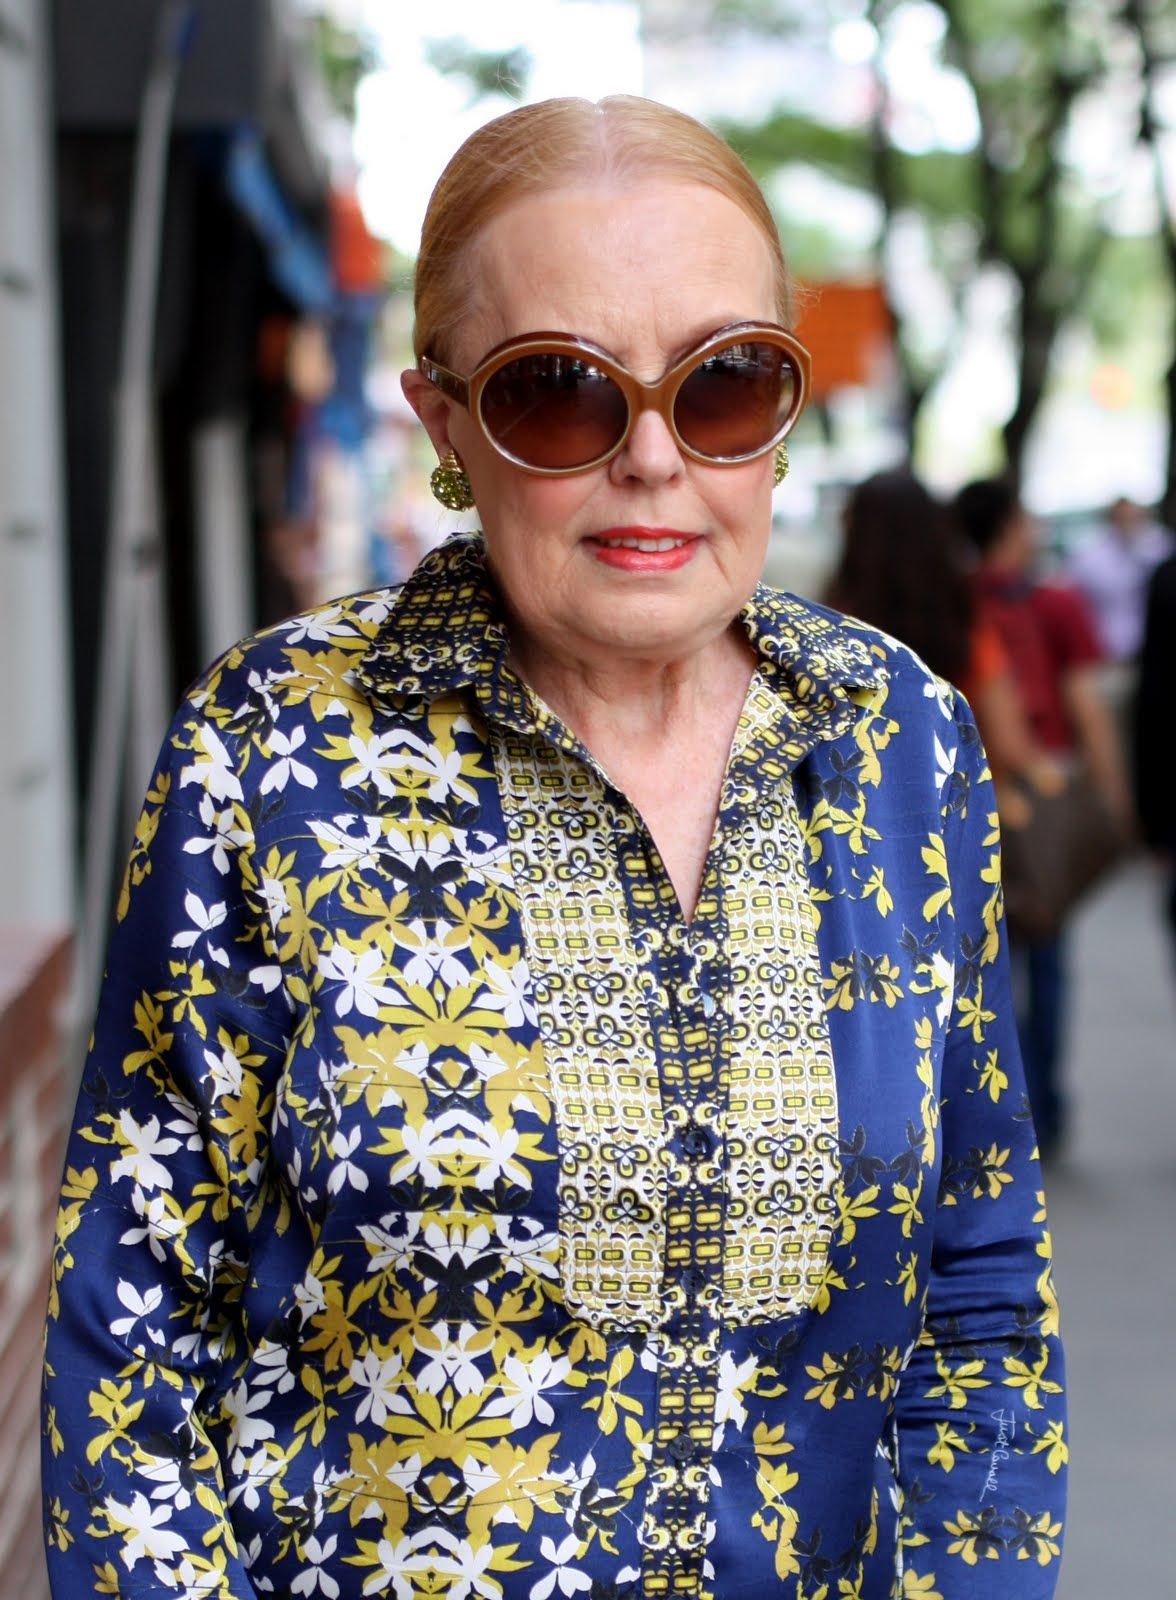 Not afraid of color and patterns aging with style pinterest